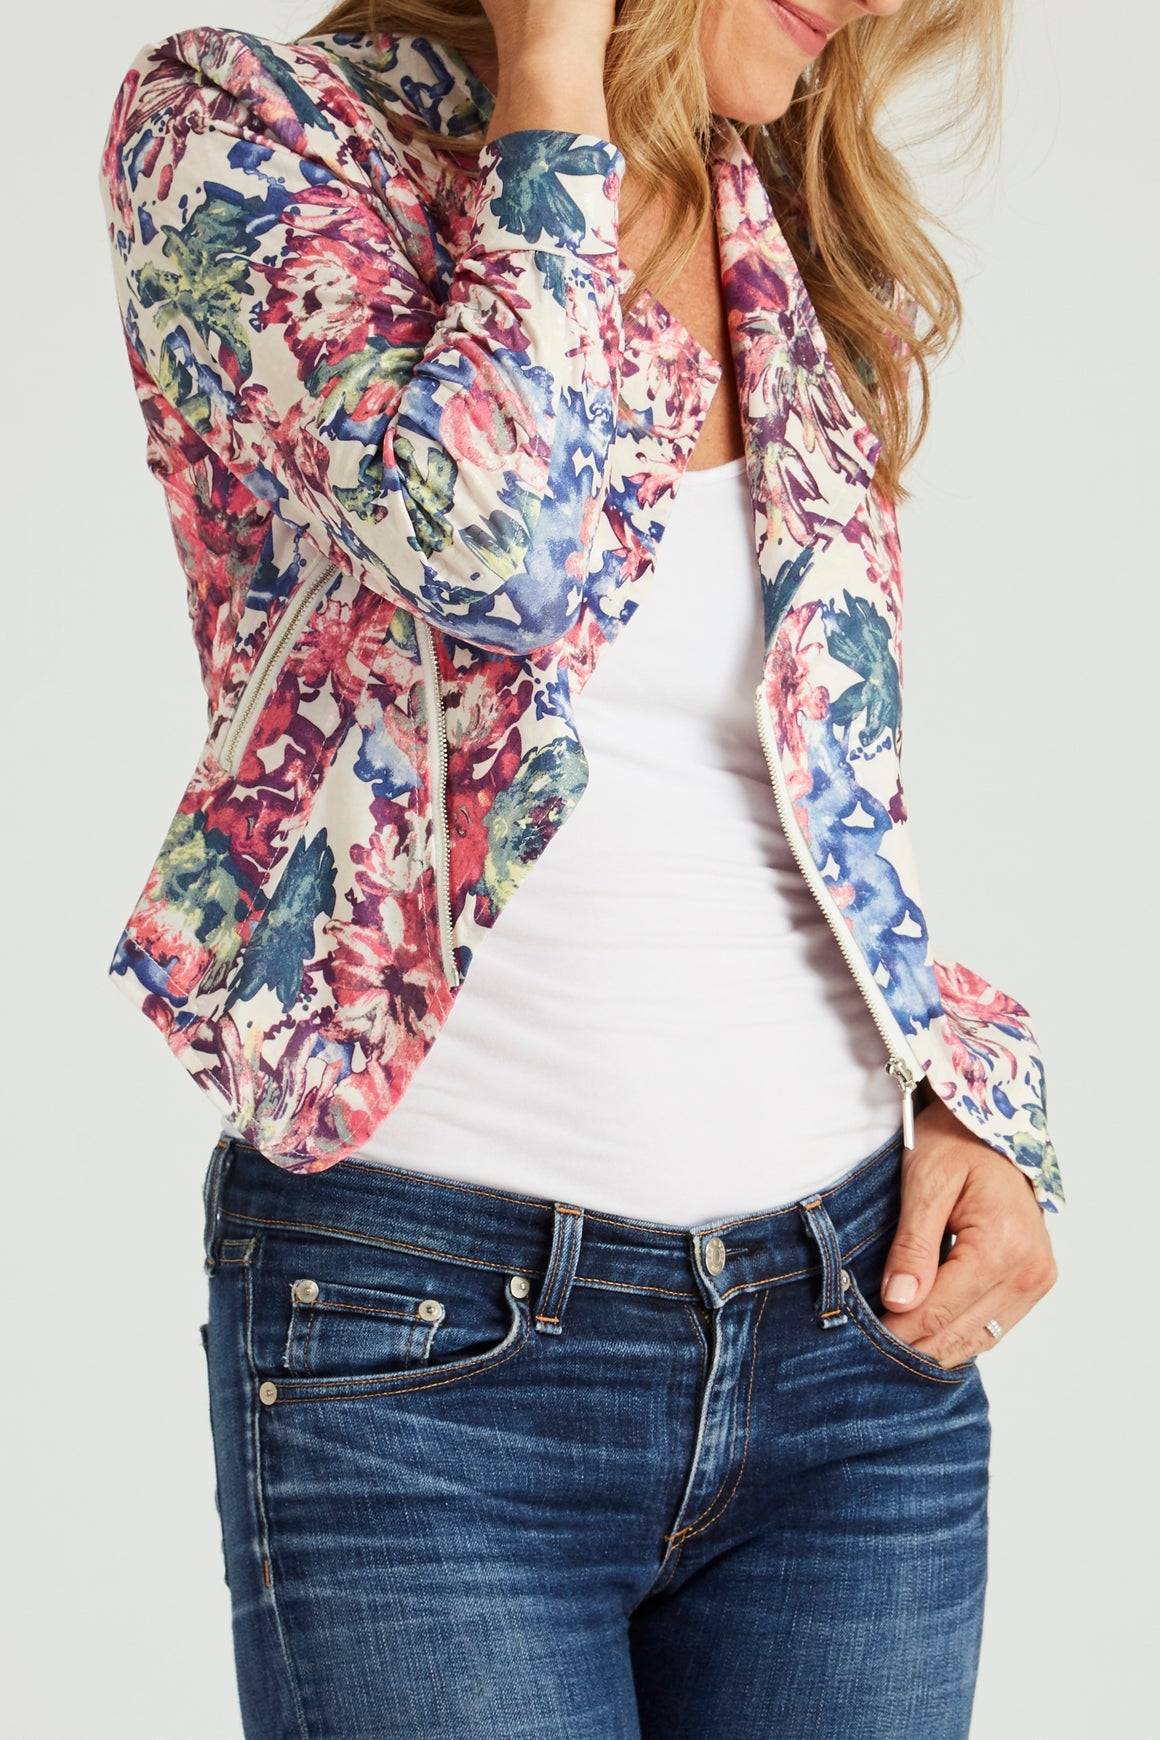 The Little Diva Jacket - Spring